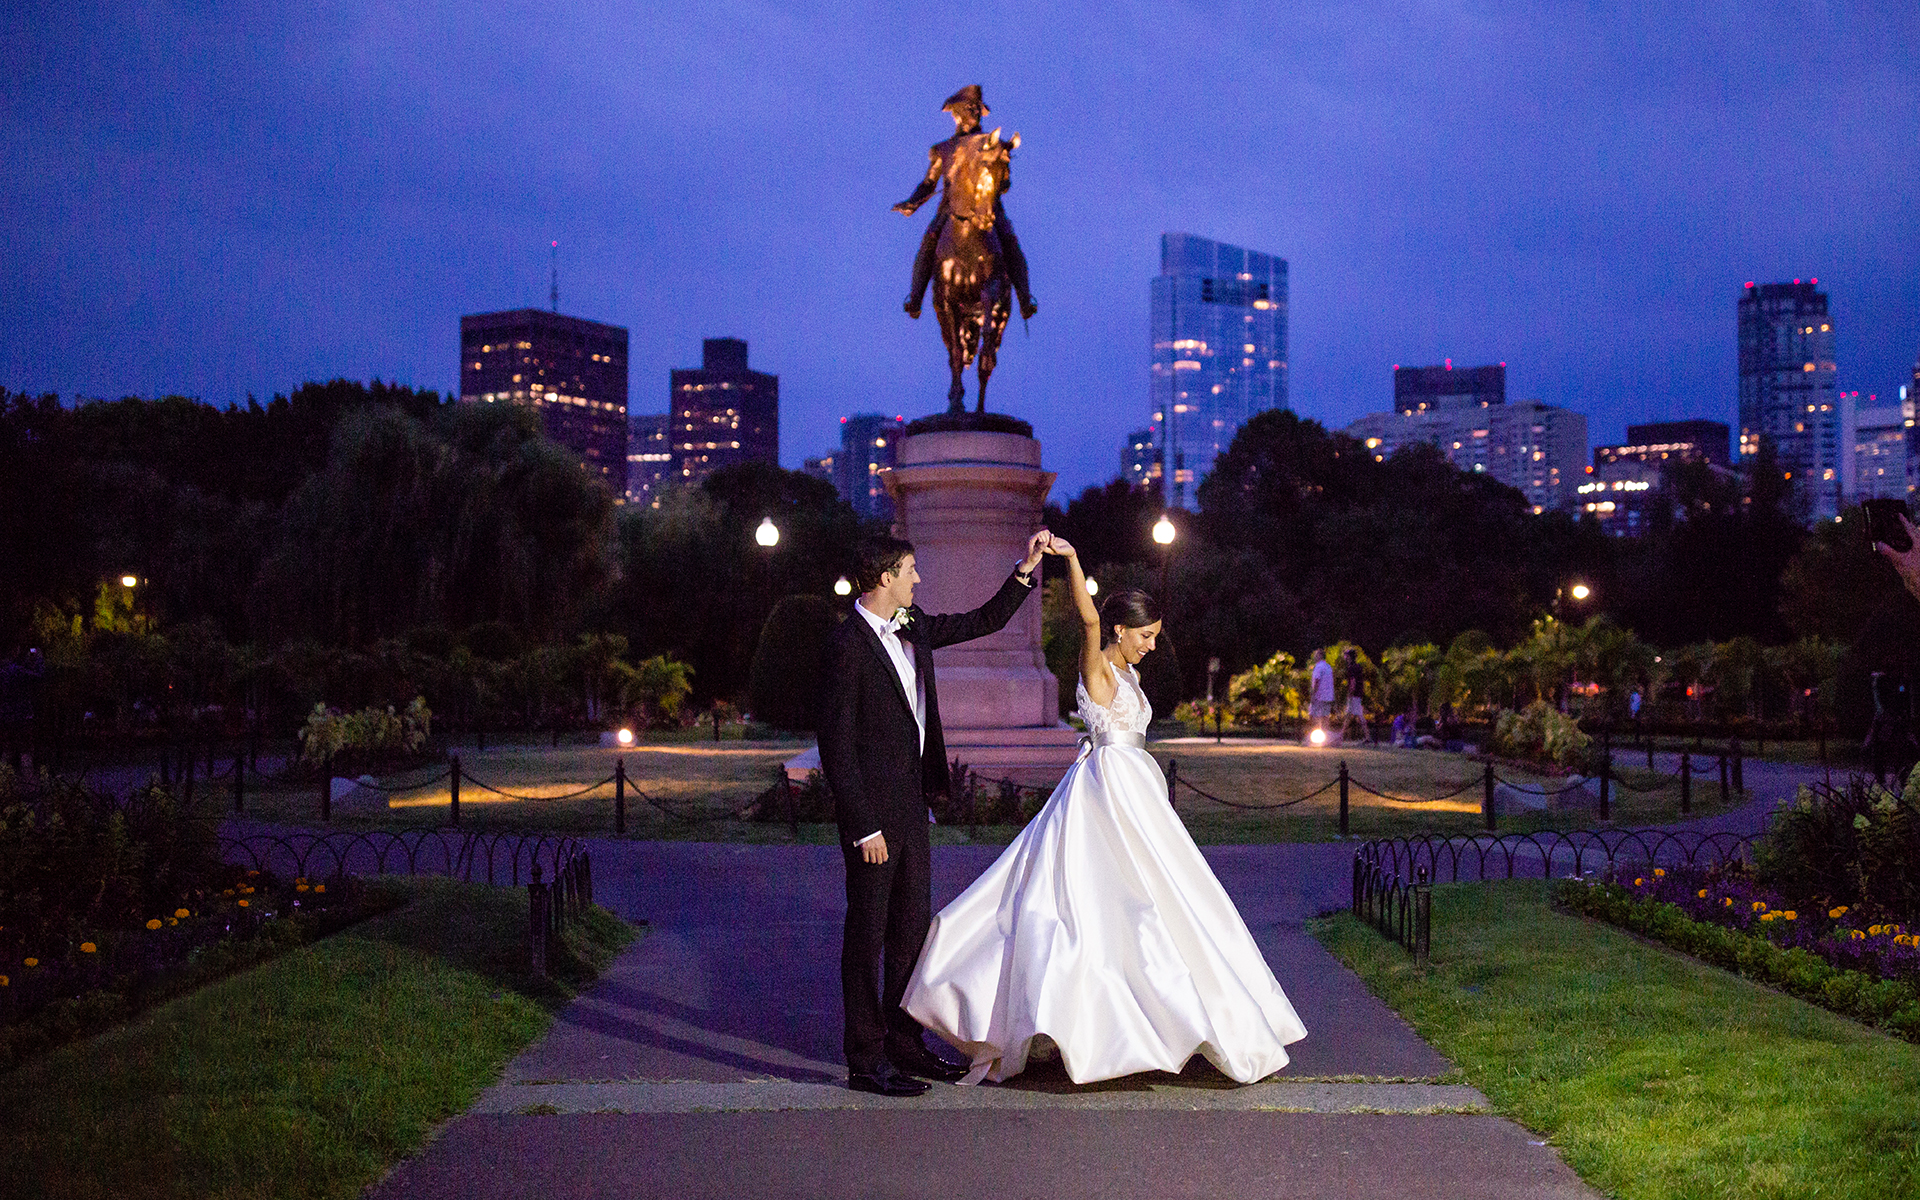 bride and groom dance at night in the boston public garden